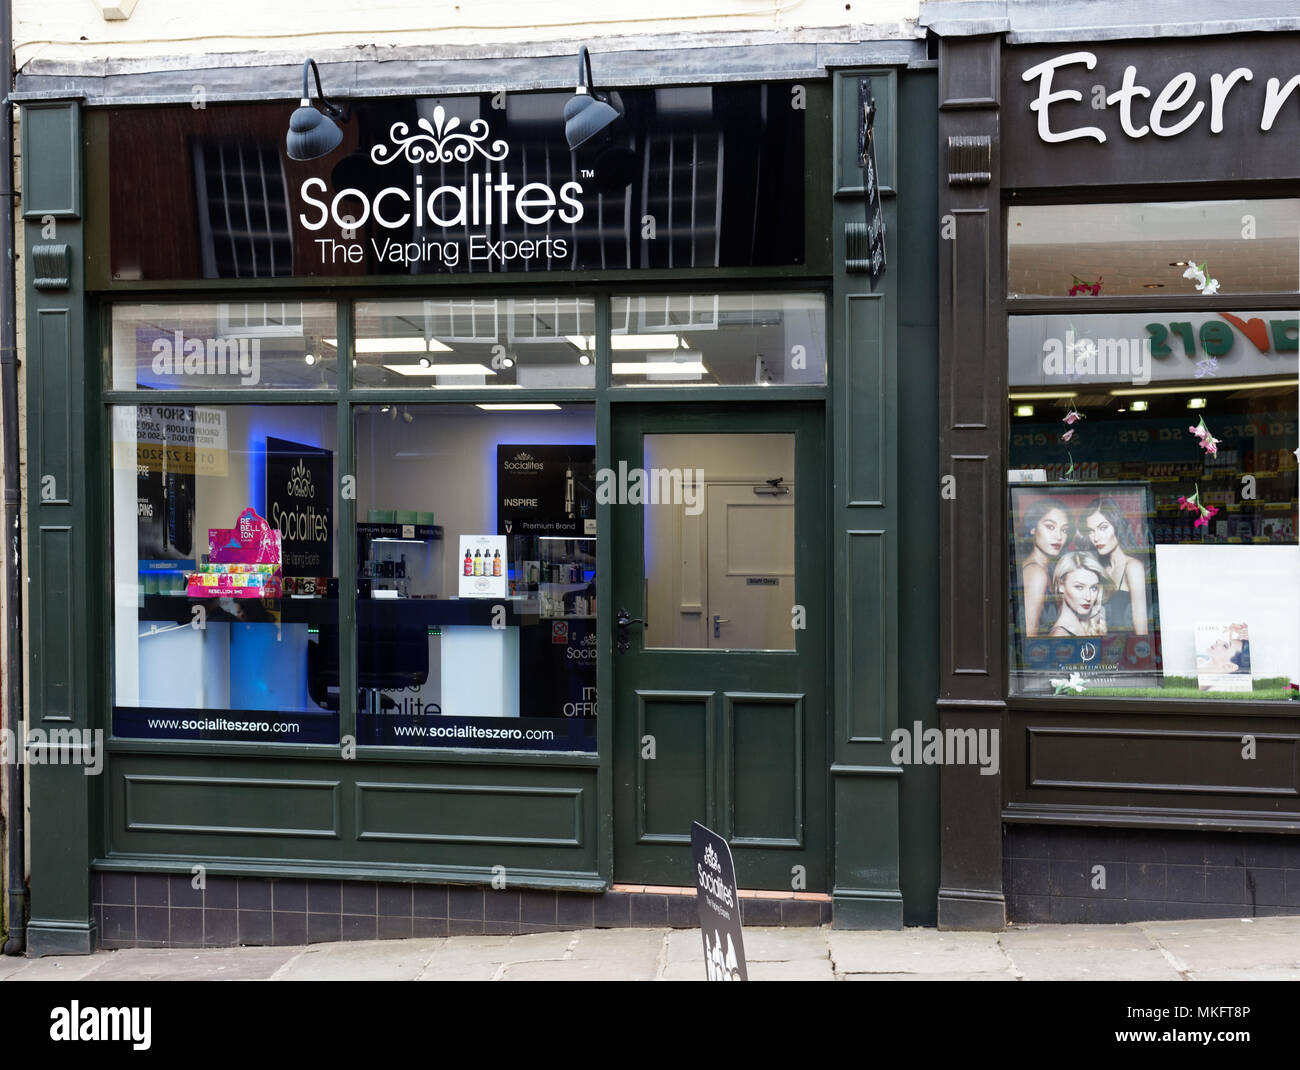 Vaping and e-cigarette shop in Chesterfield, Derbyshire - Stock Image